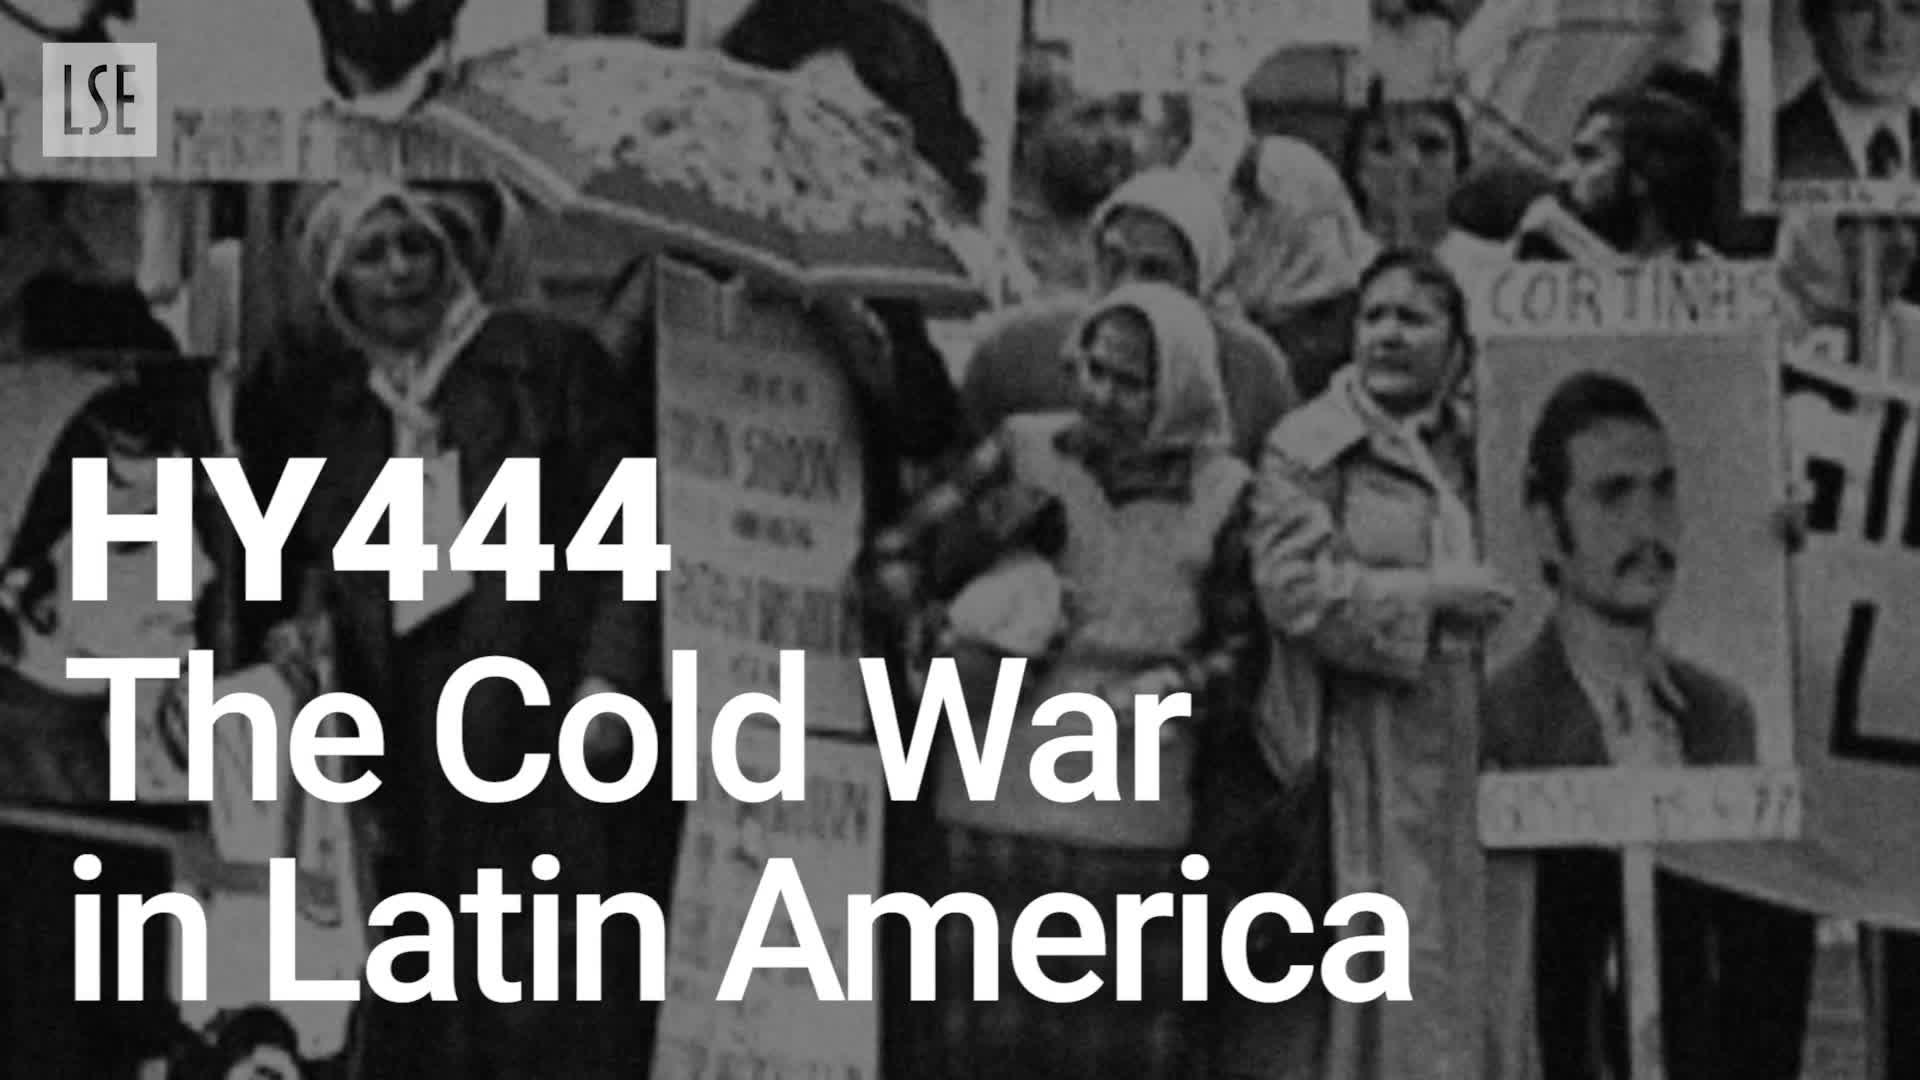 HY444: The Cold War in Latin America